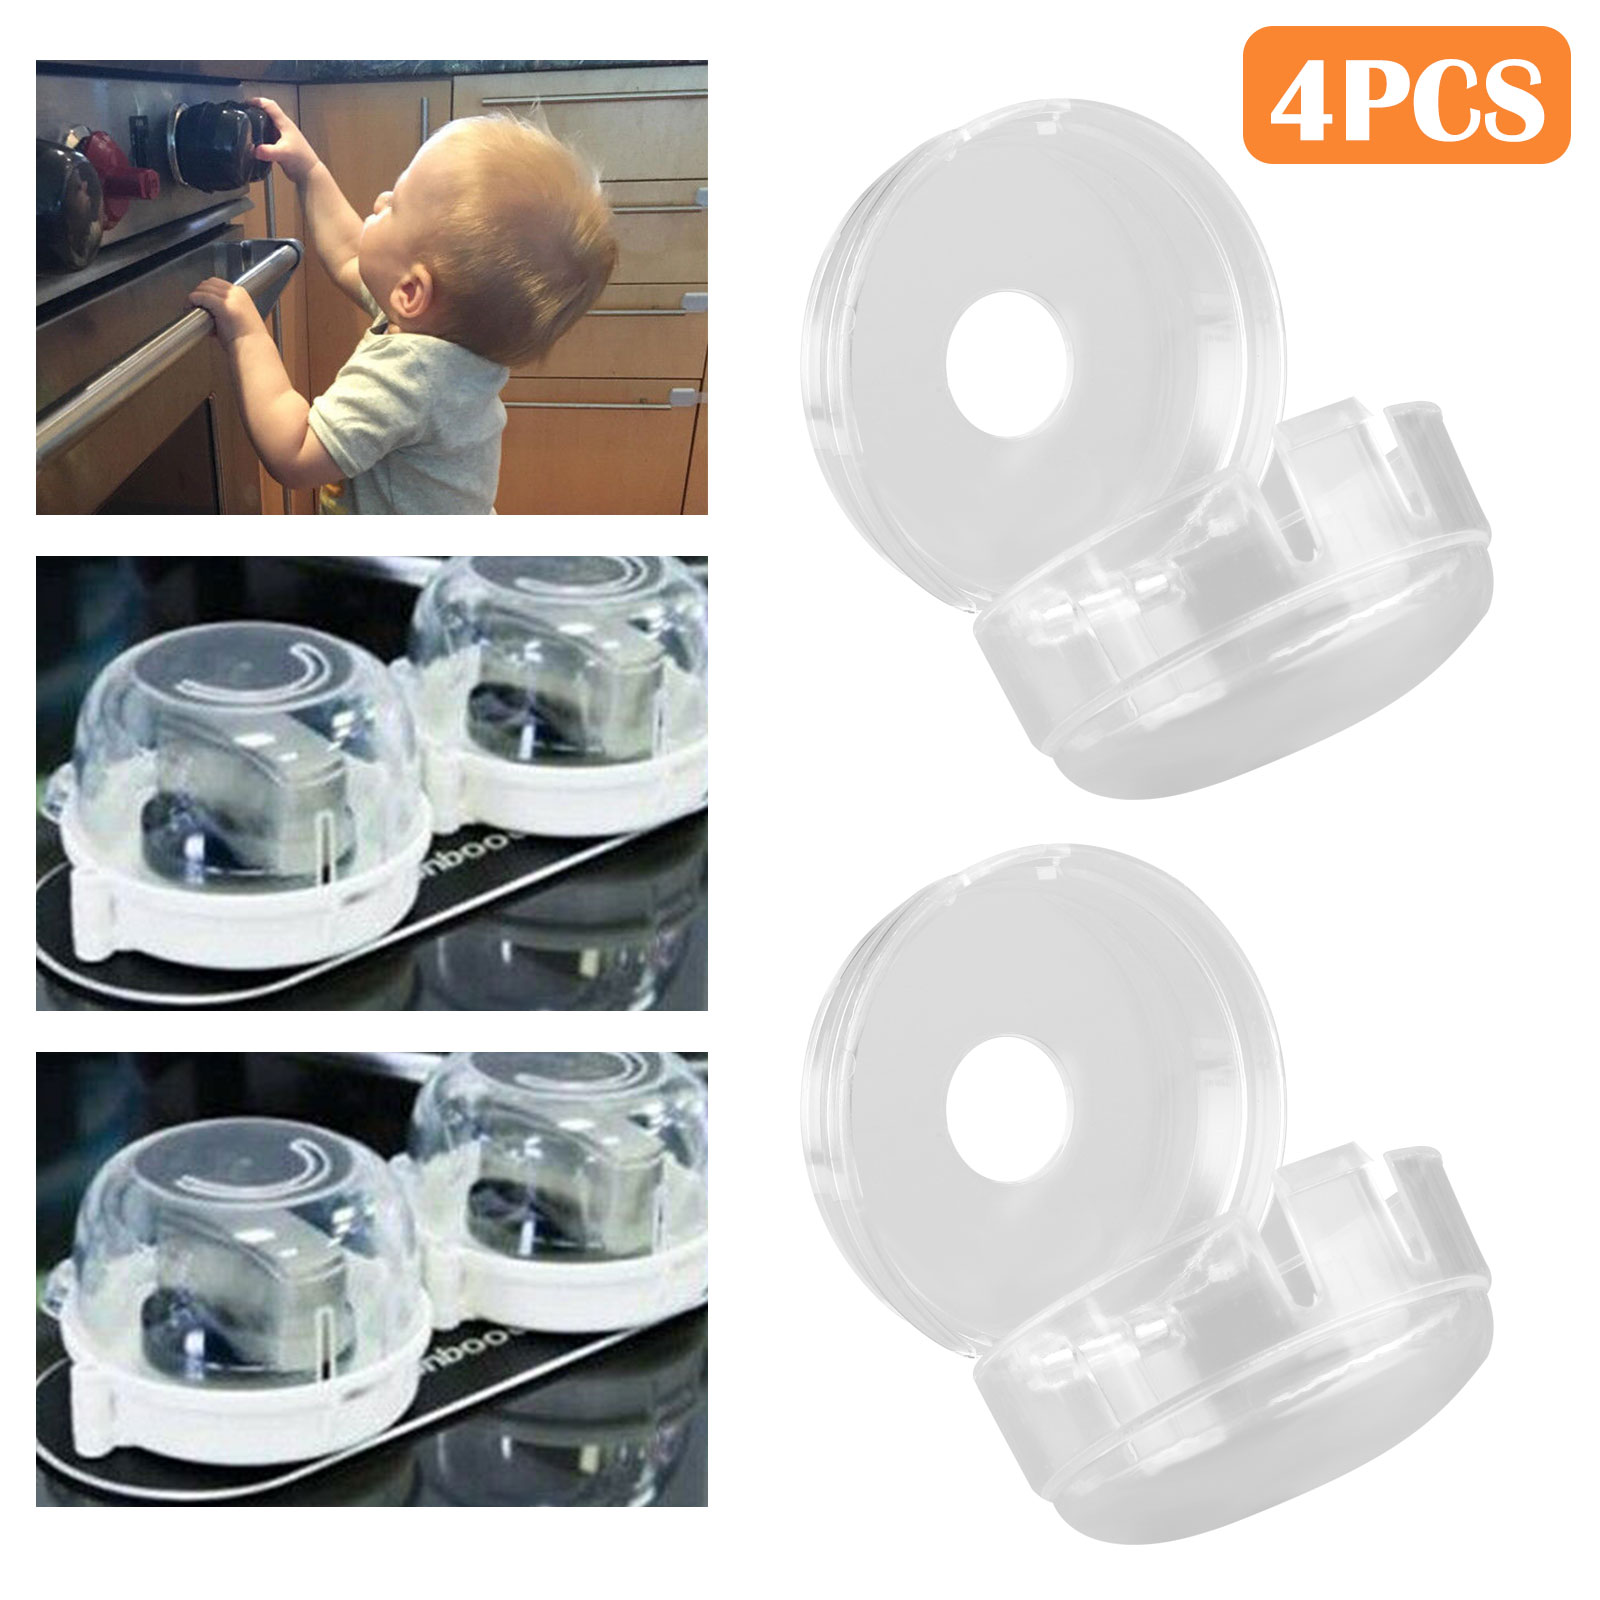 Universal Oven & Stove Knob Covers Clear View Child Baby Kitchen Safety 4Pcs/Set Baby Safety & Health